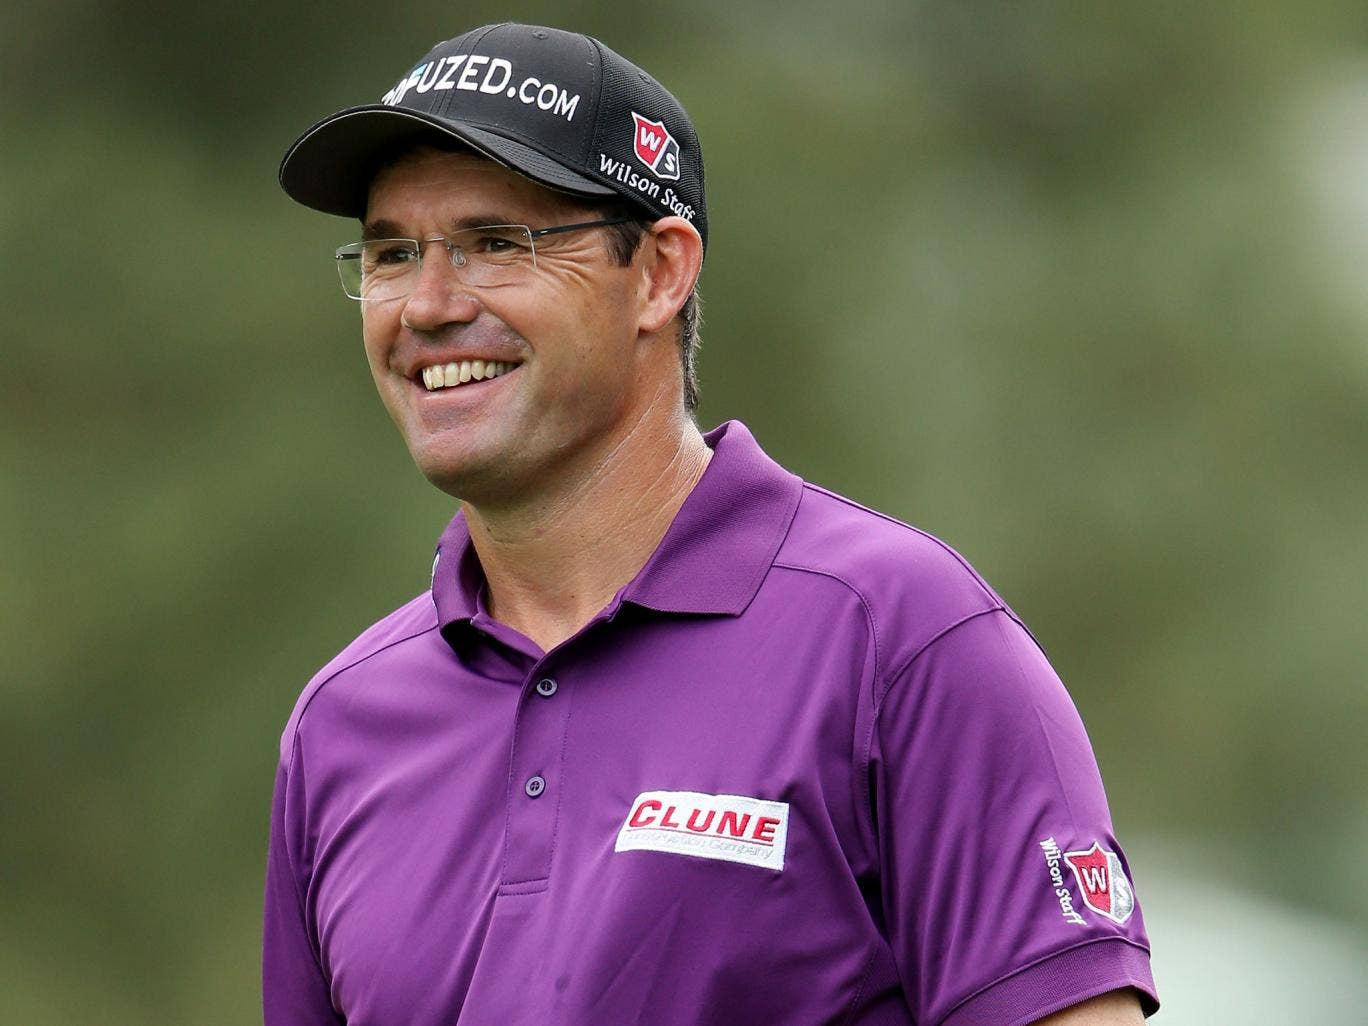 Padraig Harrington used a belly putter for the first time yesterday